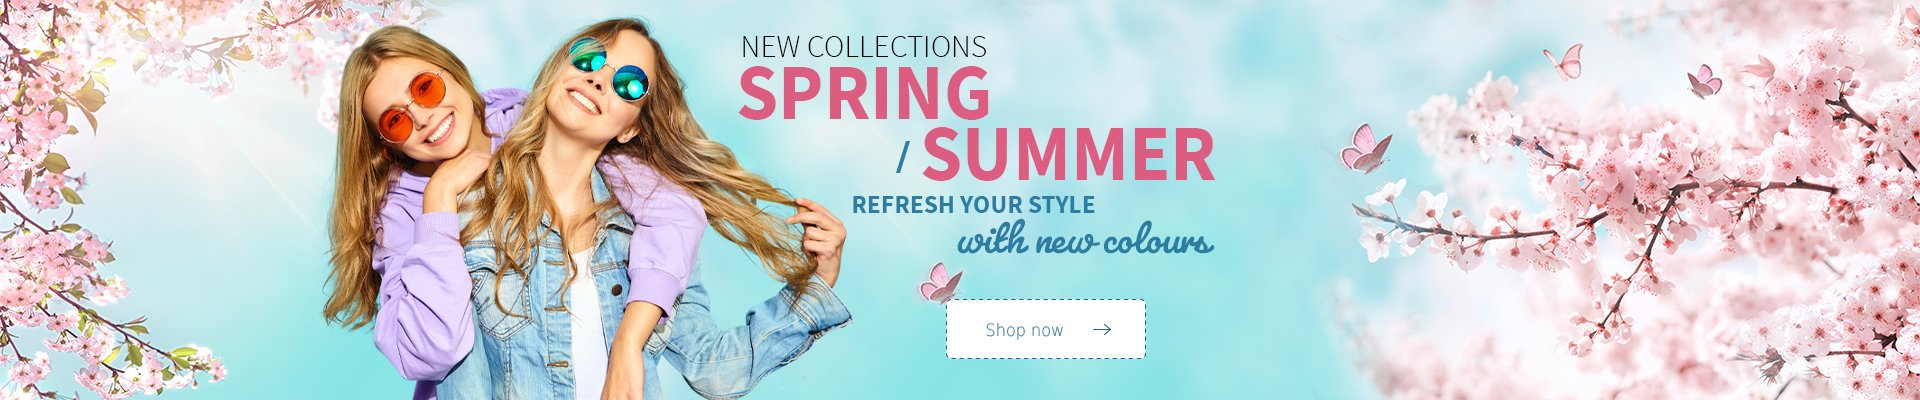 New spring / summer collections